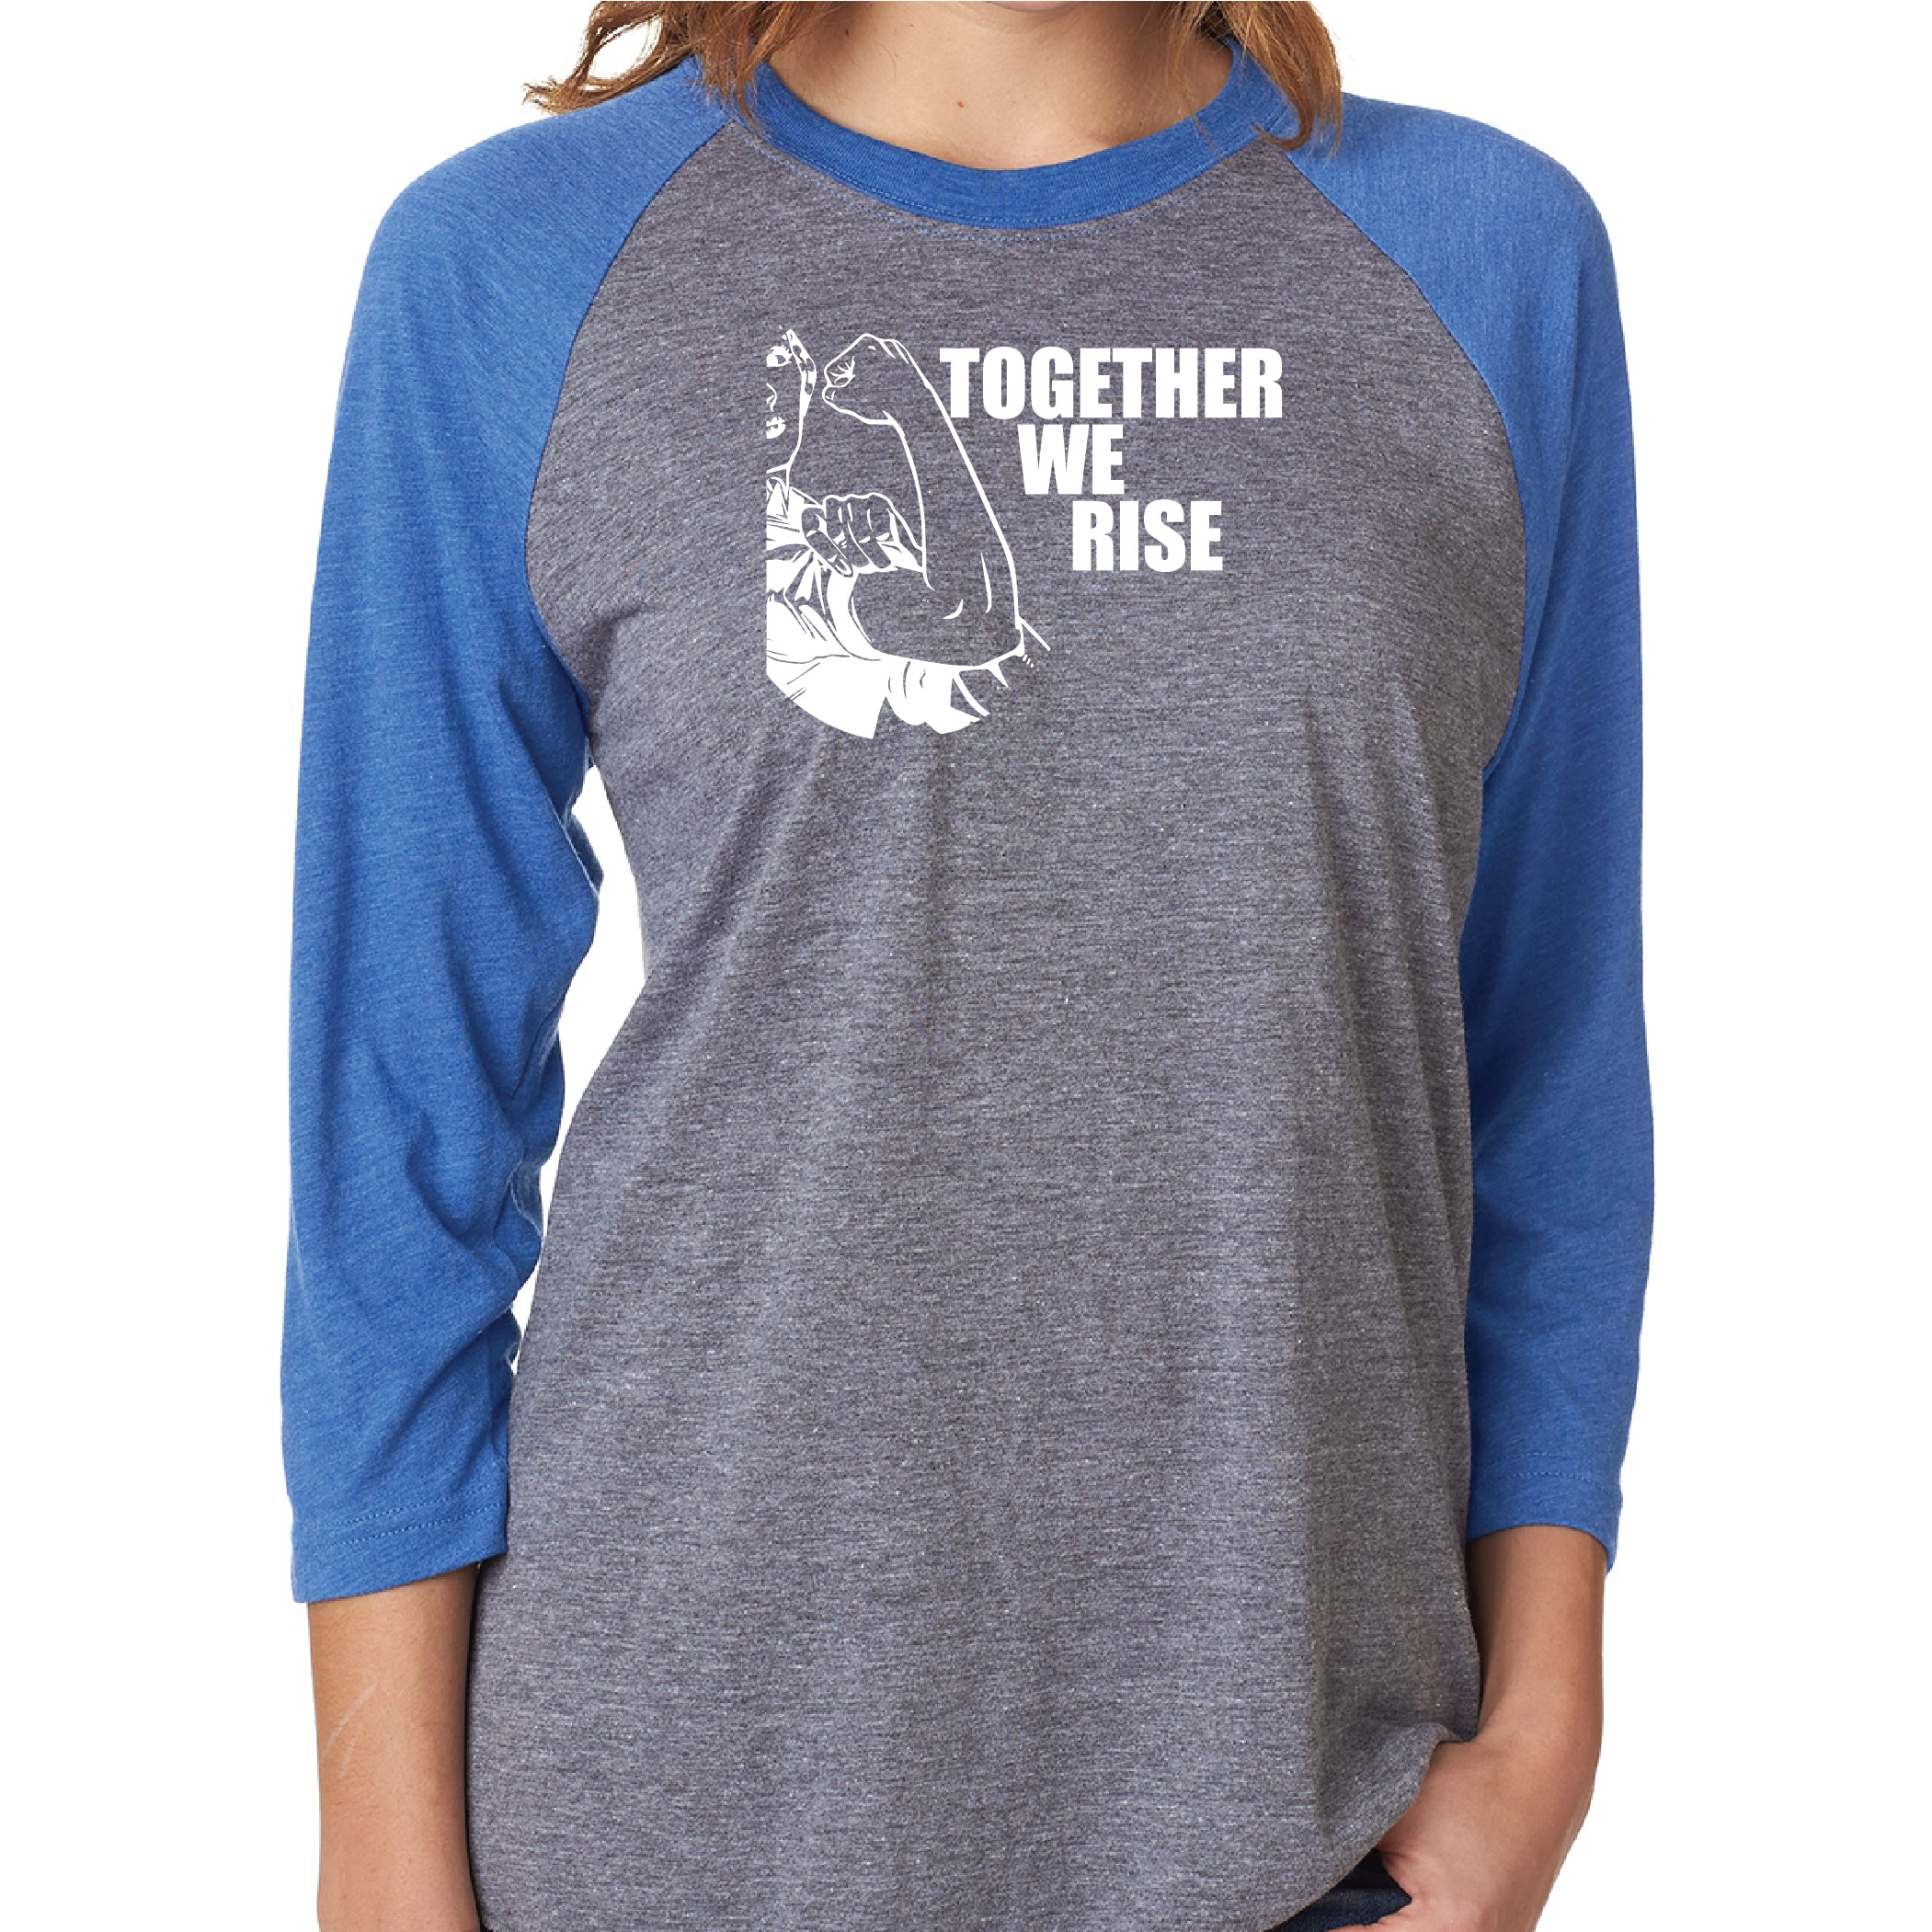 Together - Unisex Raglan Baseball T-shirt